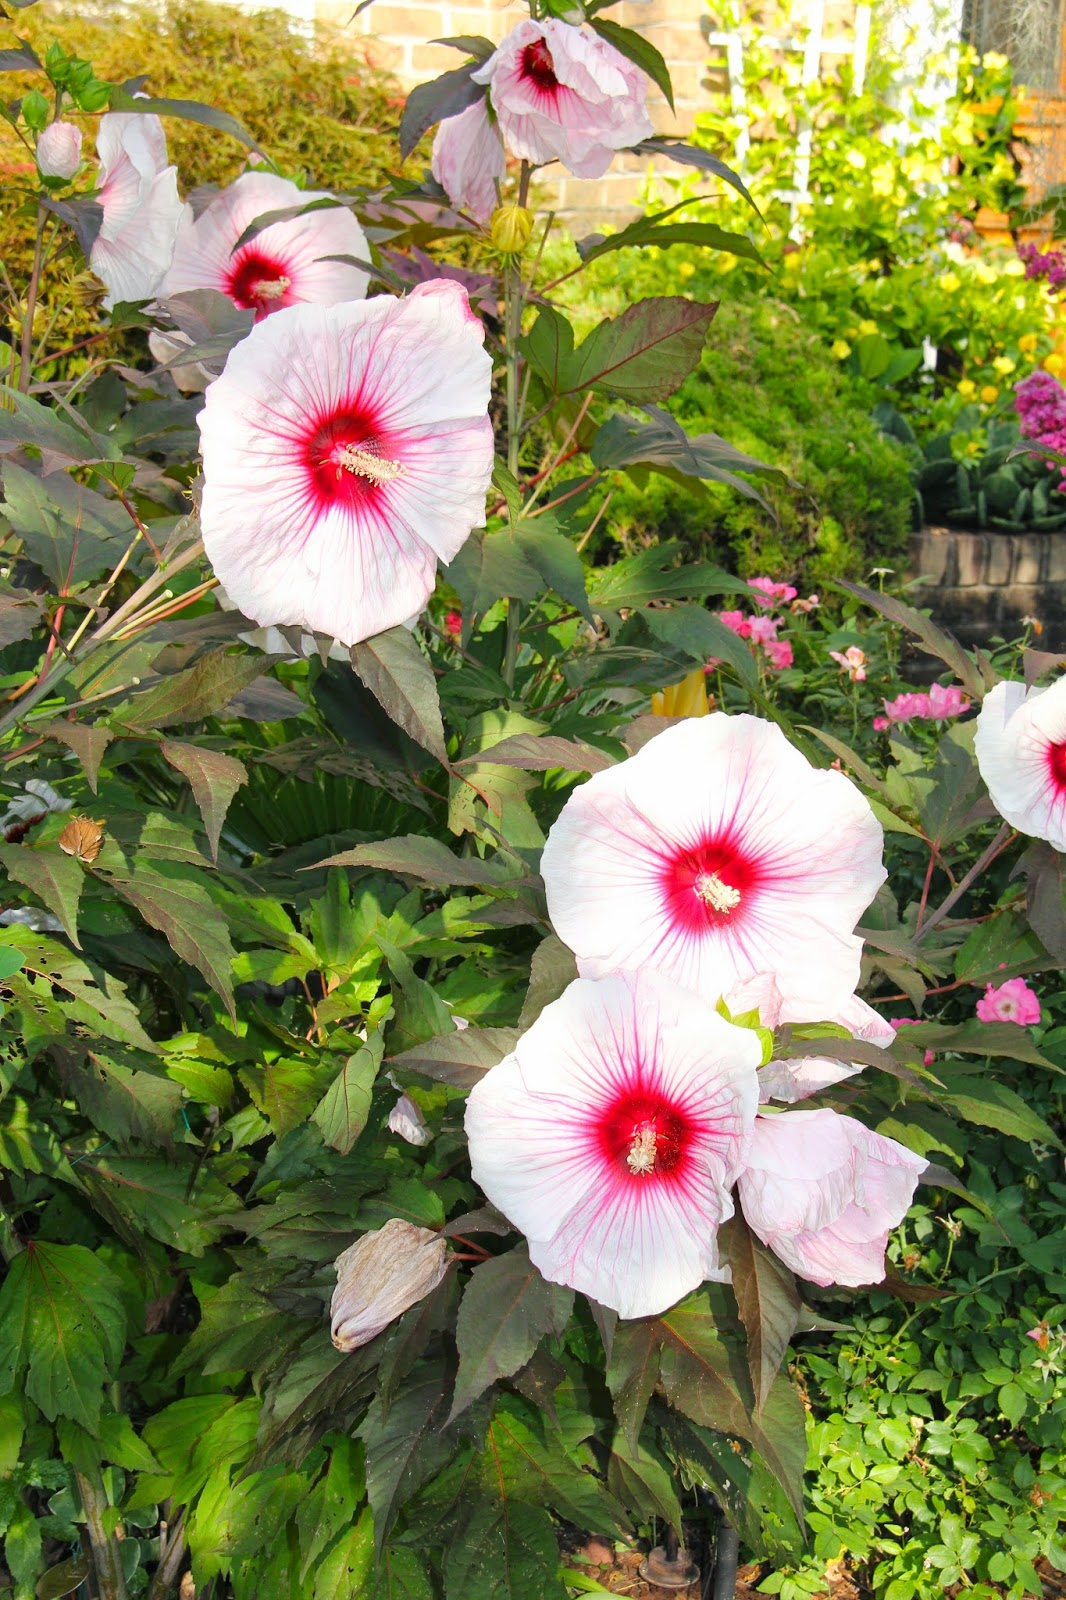 Tropical gardening in new york city some kopper king hibiscus blooms my kopper king hibiscus was blooming at its peak and its a sight to see when its blooming at its finest i counted 12 blooms on it in one day izmirmasajfo